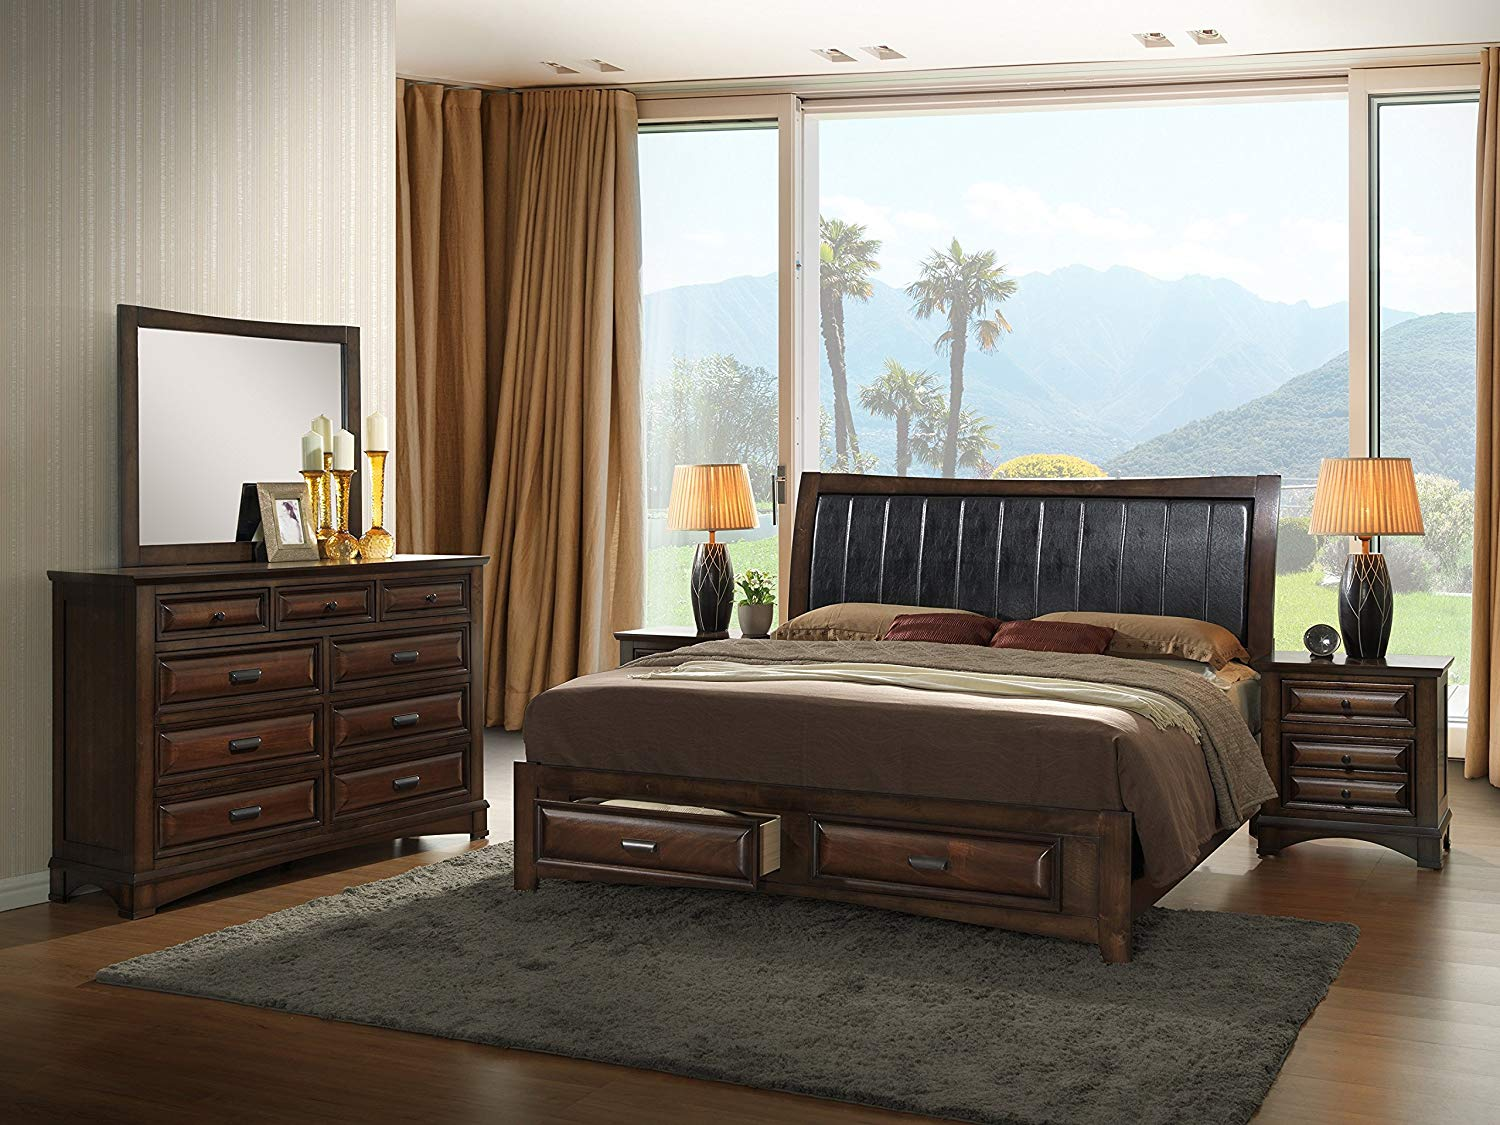 Master bedroom sets by Roundhill Furniture